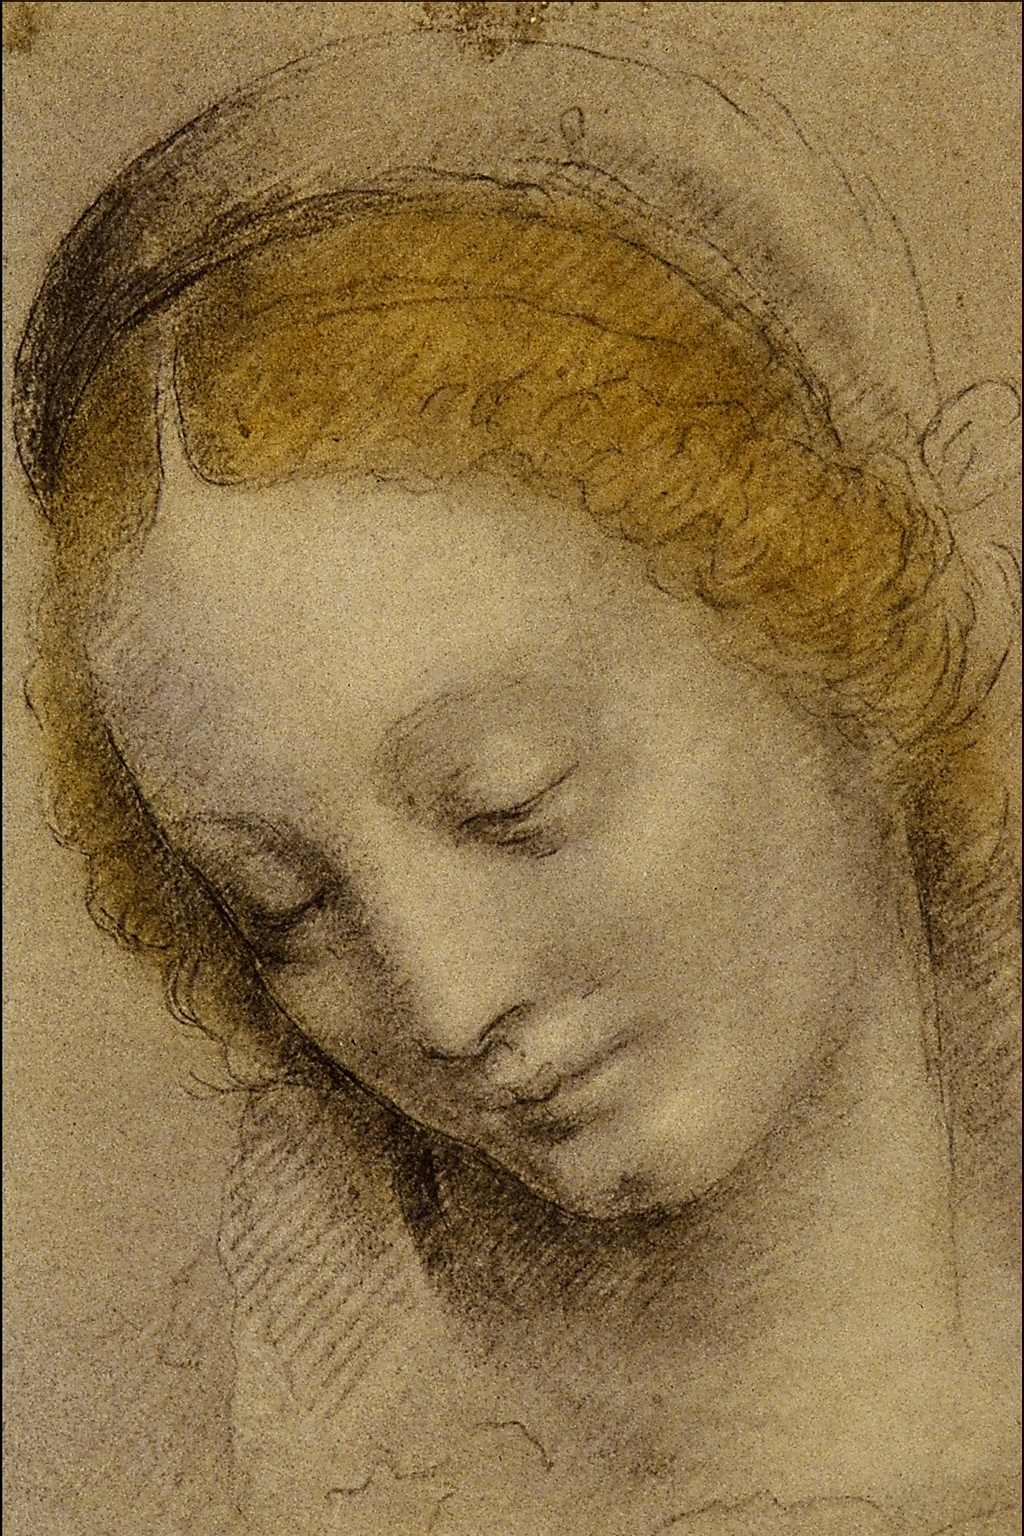 Head_of_a_Woman_-_Bernardino_Luini.png?uselang=fr